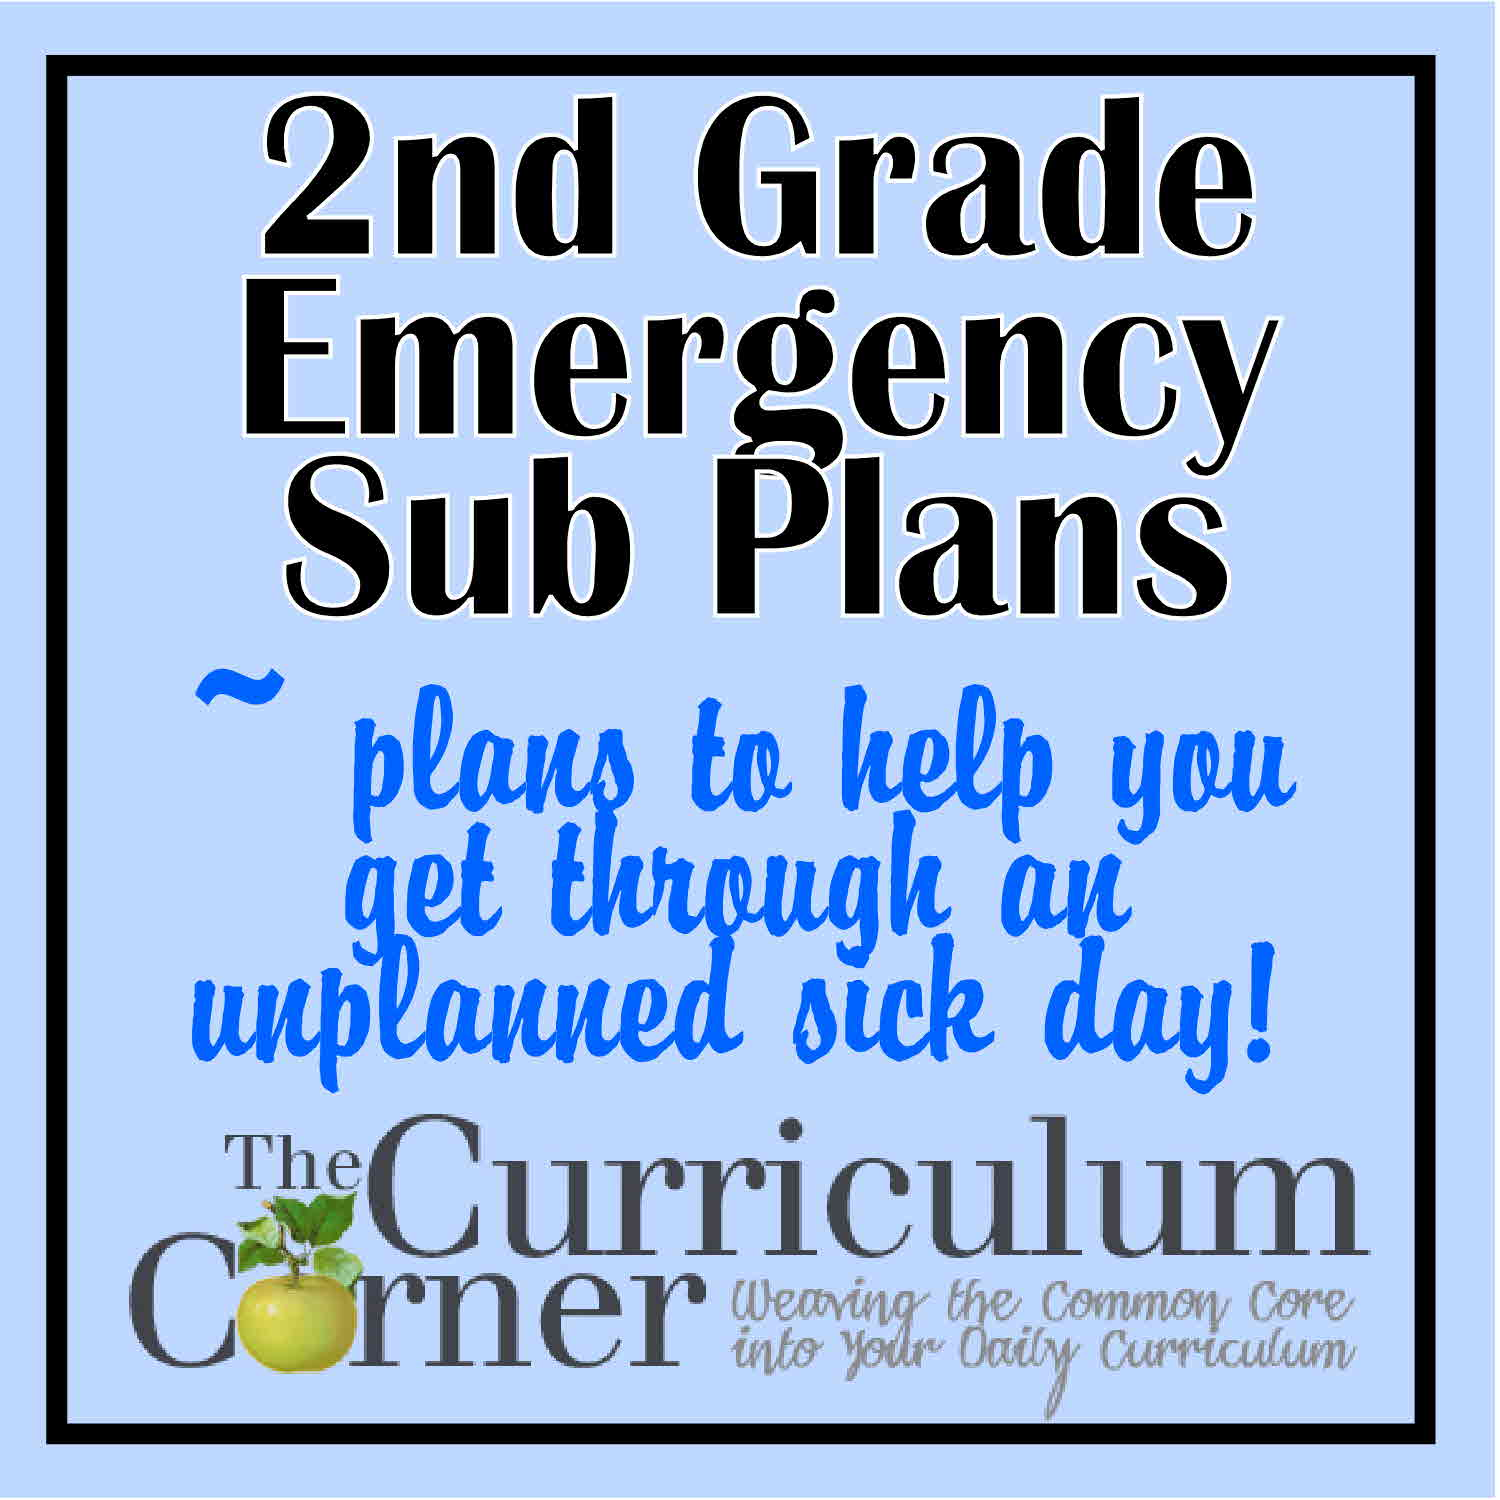 2nd Grade Emergency Sub Plans